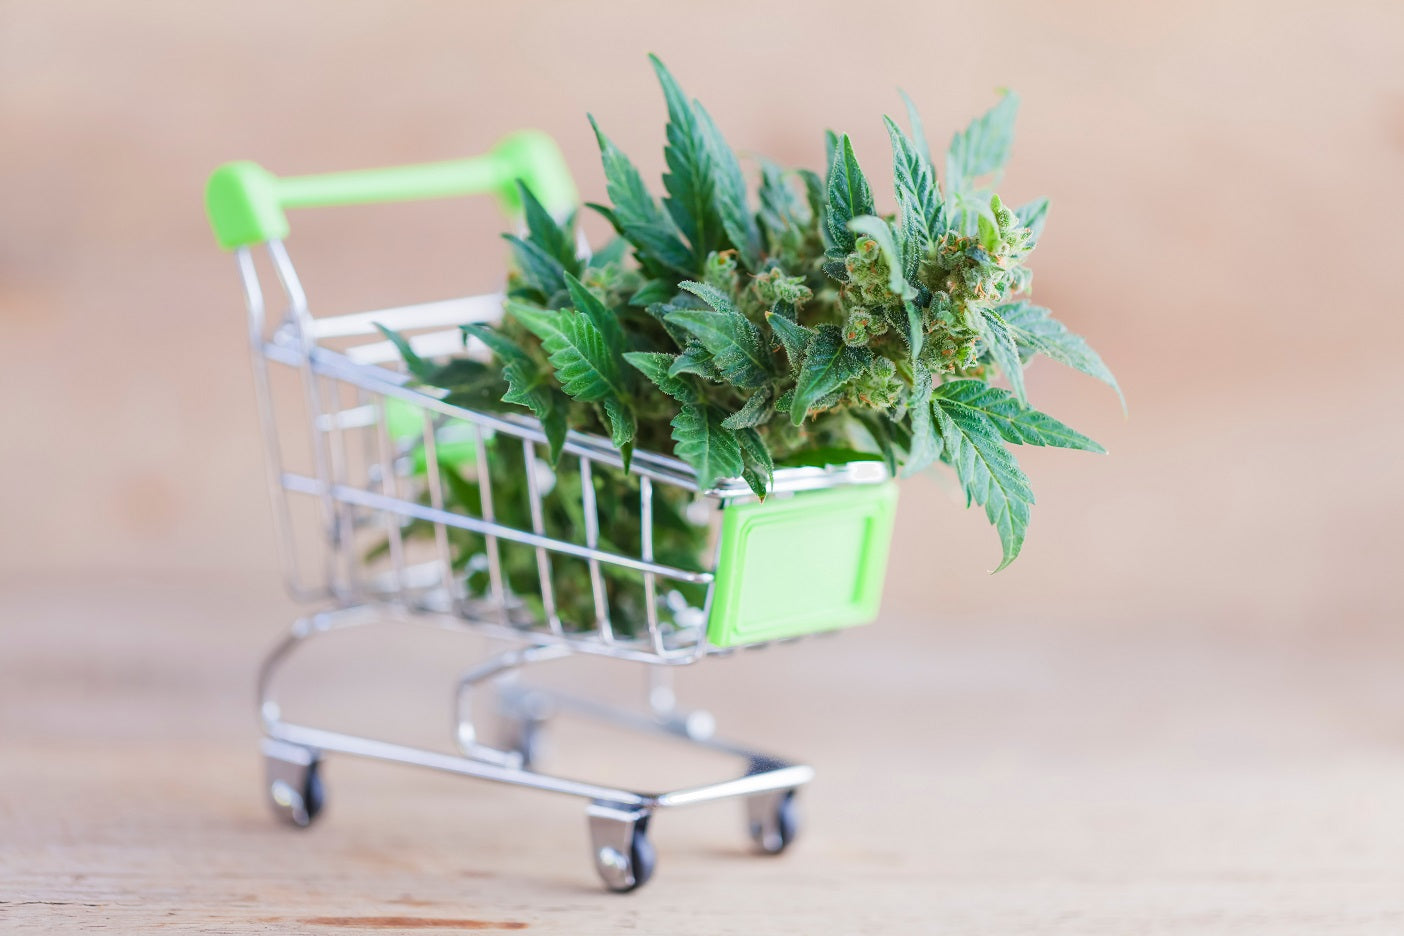 mini shopping cart filled with marijuana plant